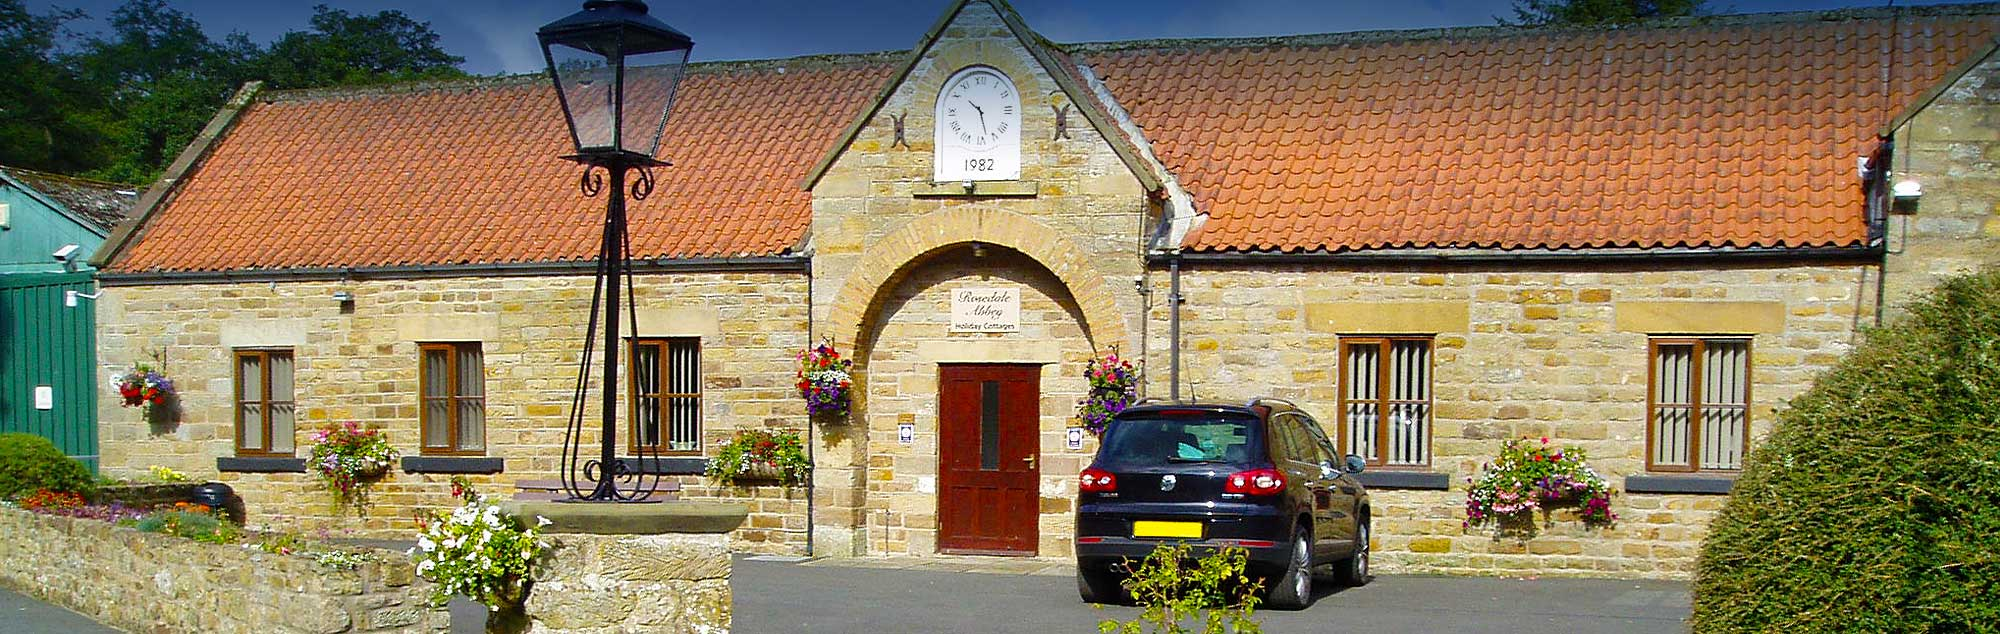 Holiday Cottages in the North York Moors